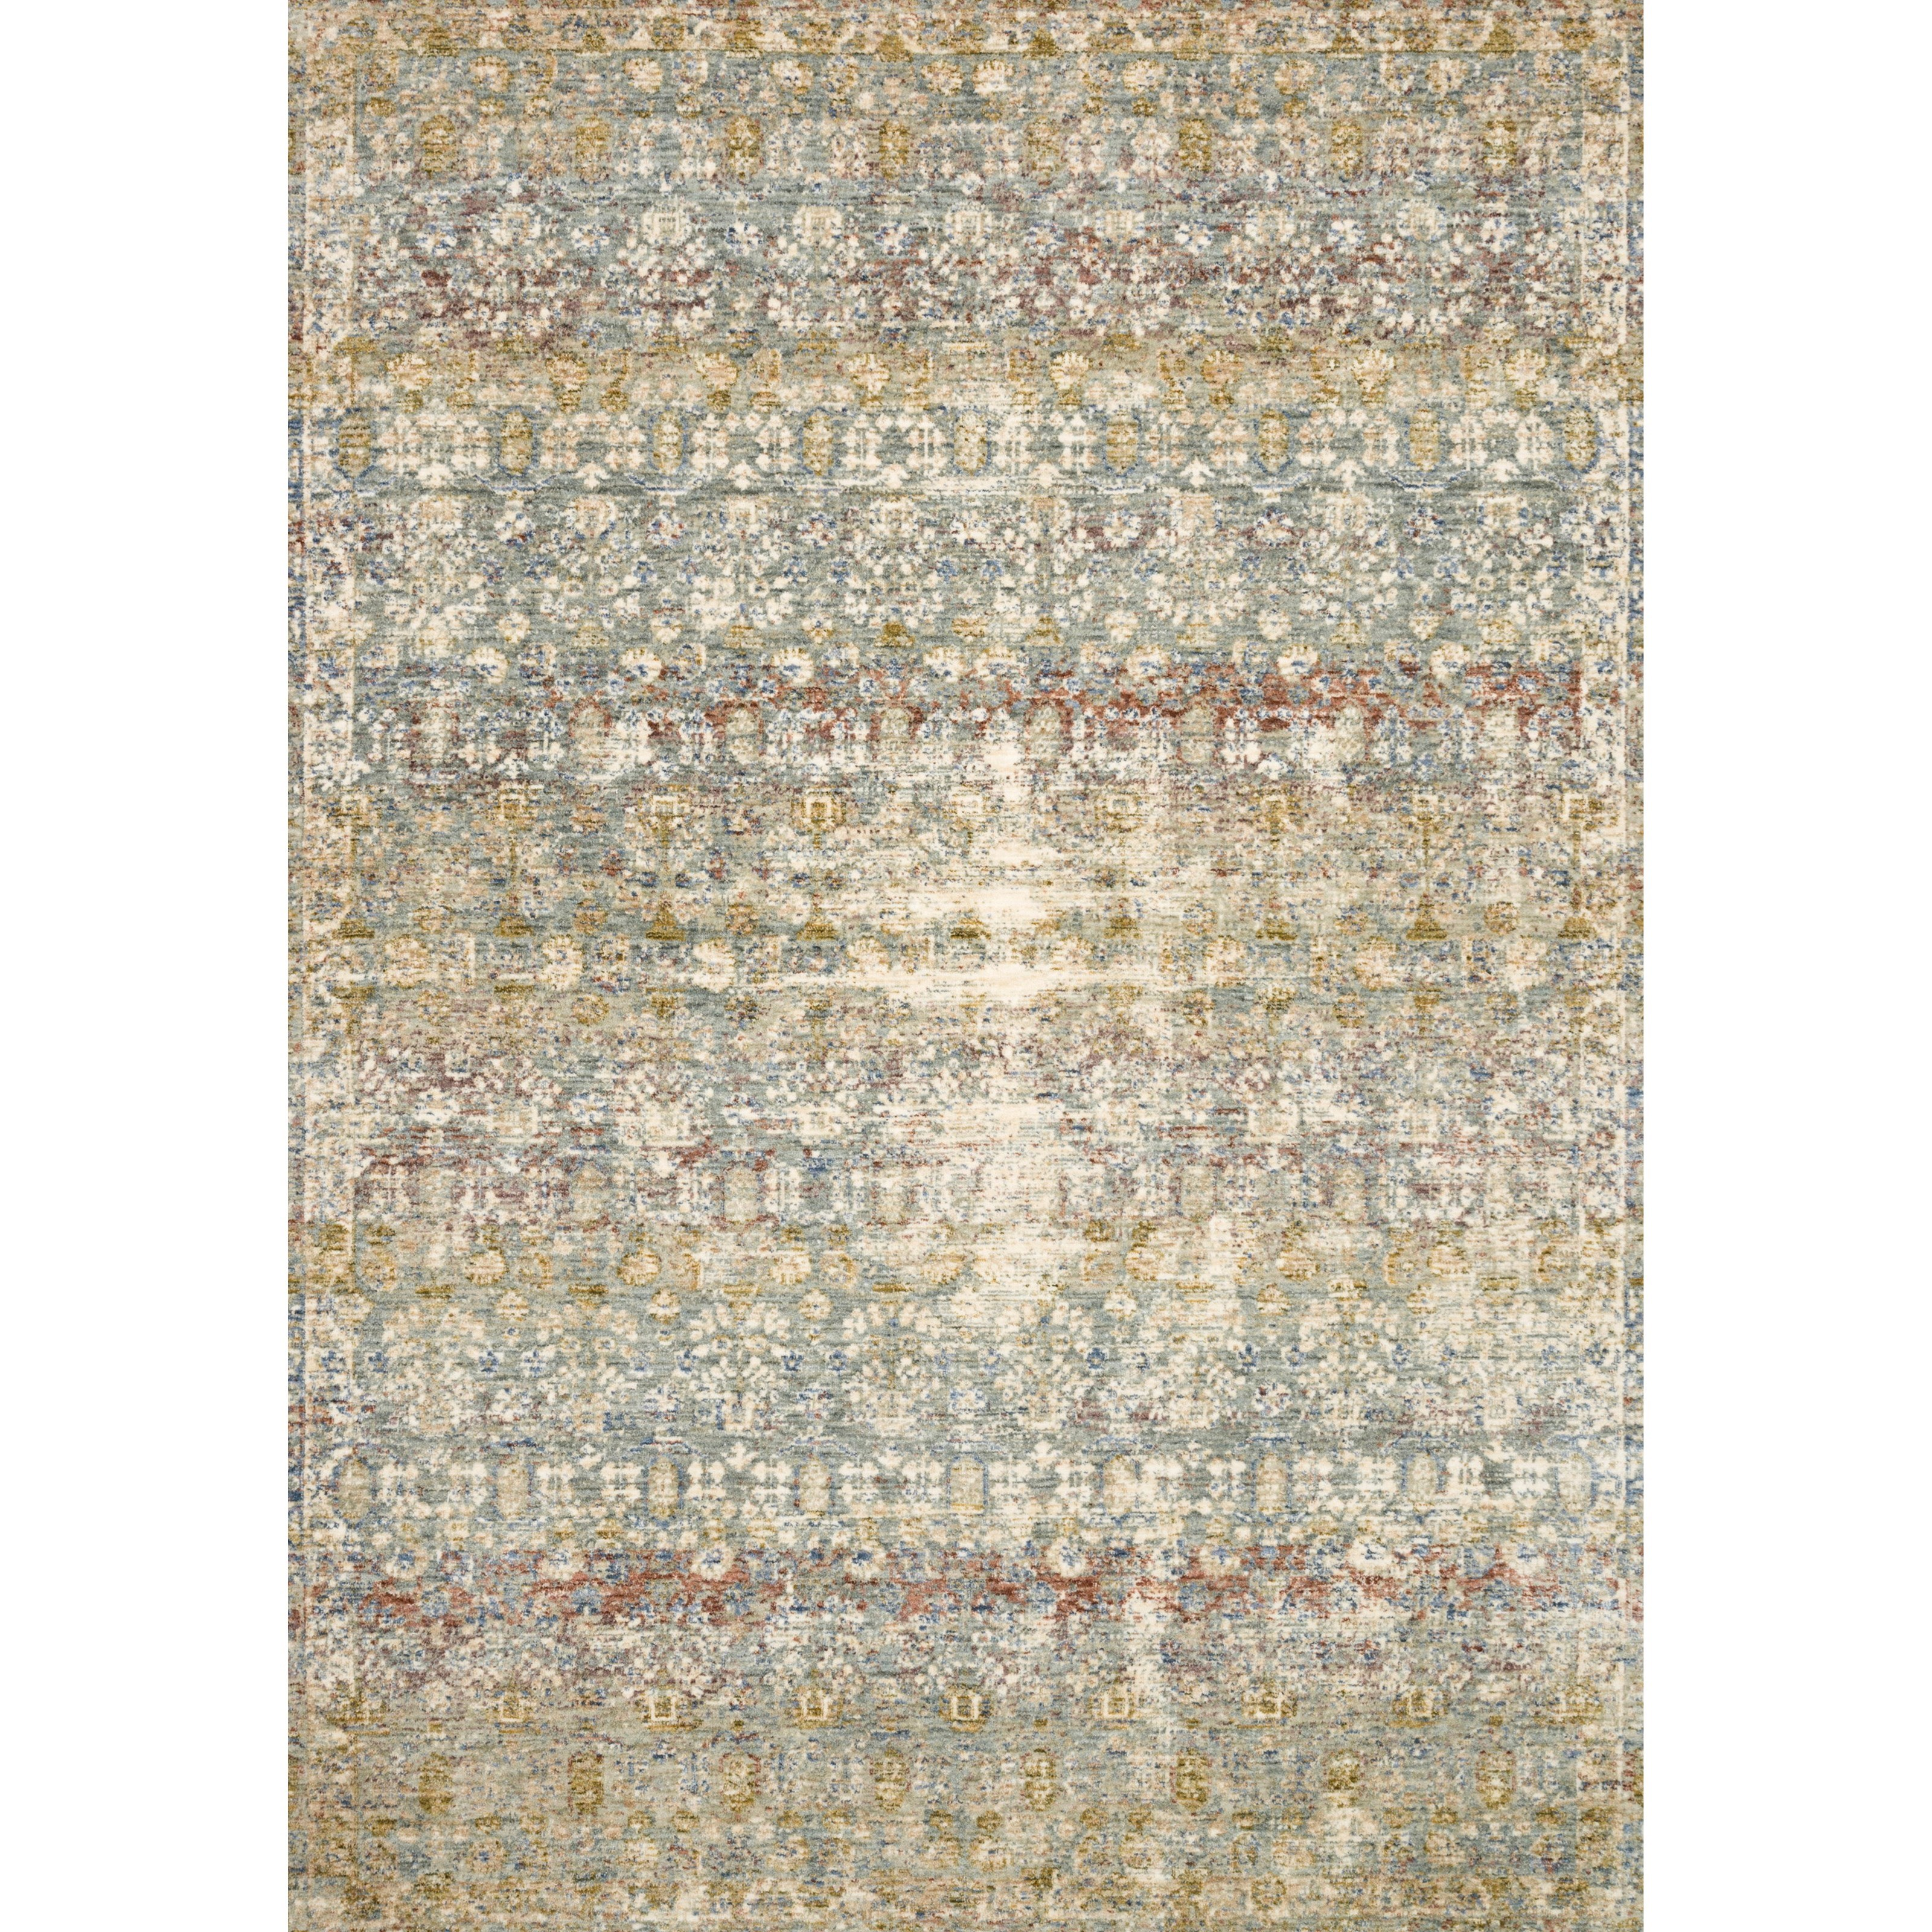 """Revere 11'6"""" x 15'6"""" Grey / Multi Rug by Loloi Rugs at Virginia Furniture Market"""